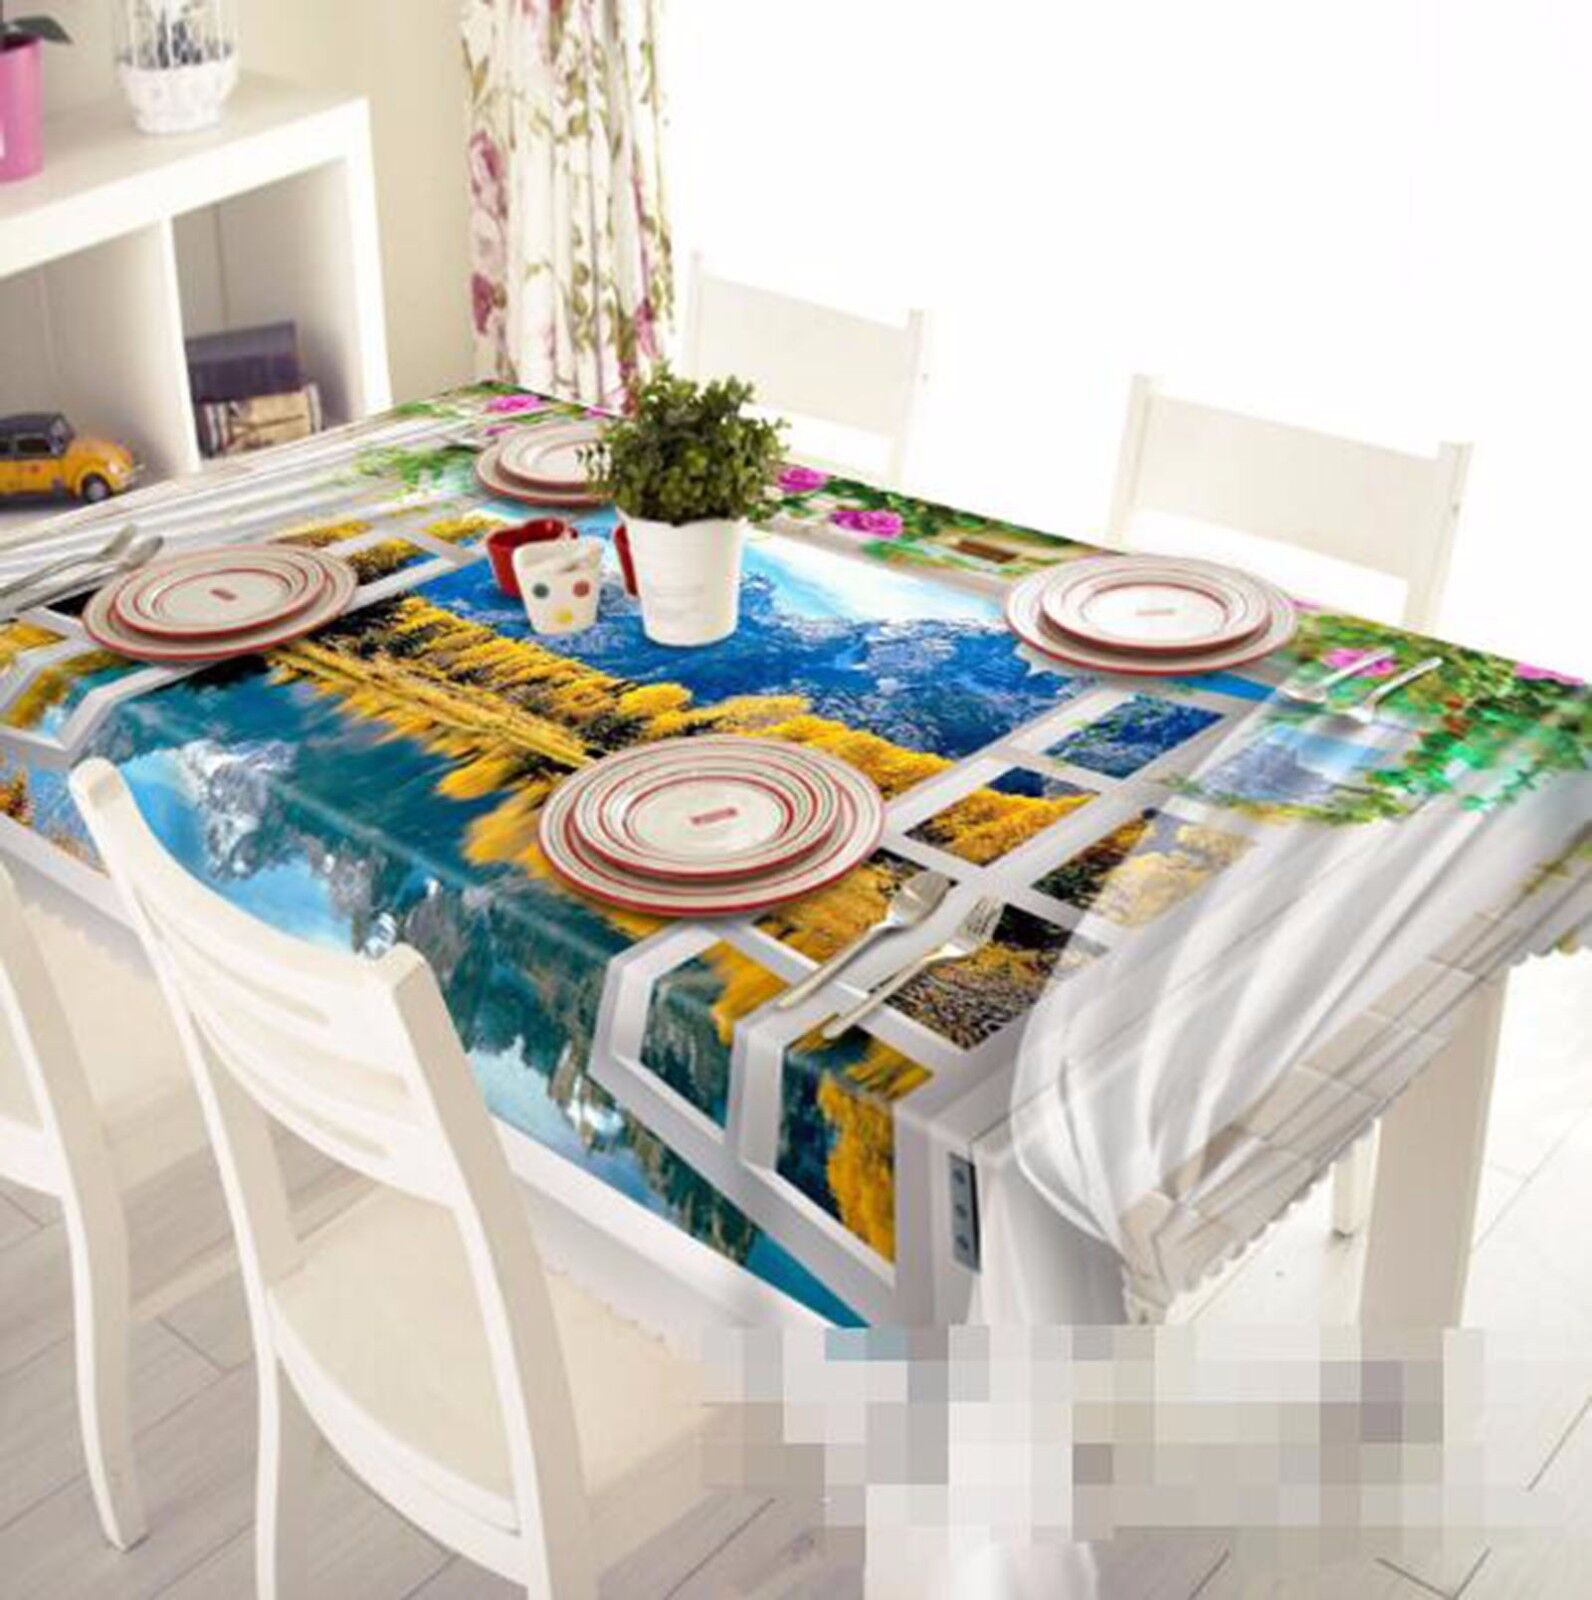 3D à battant 5 Nappe Table Cover Cloth fête d'anniversaire AJ papier peint Royaume-Uni Citron